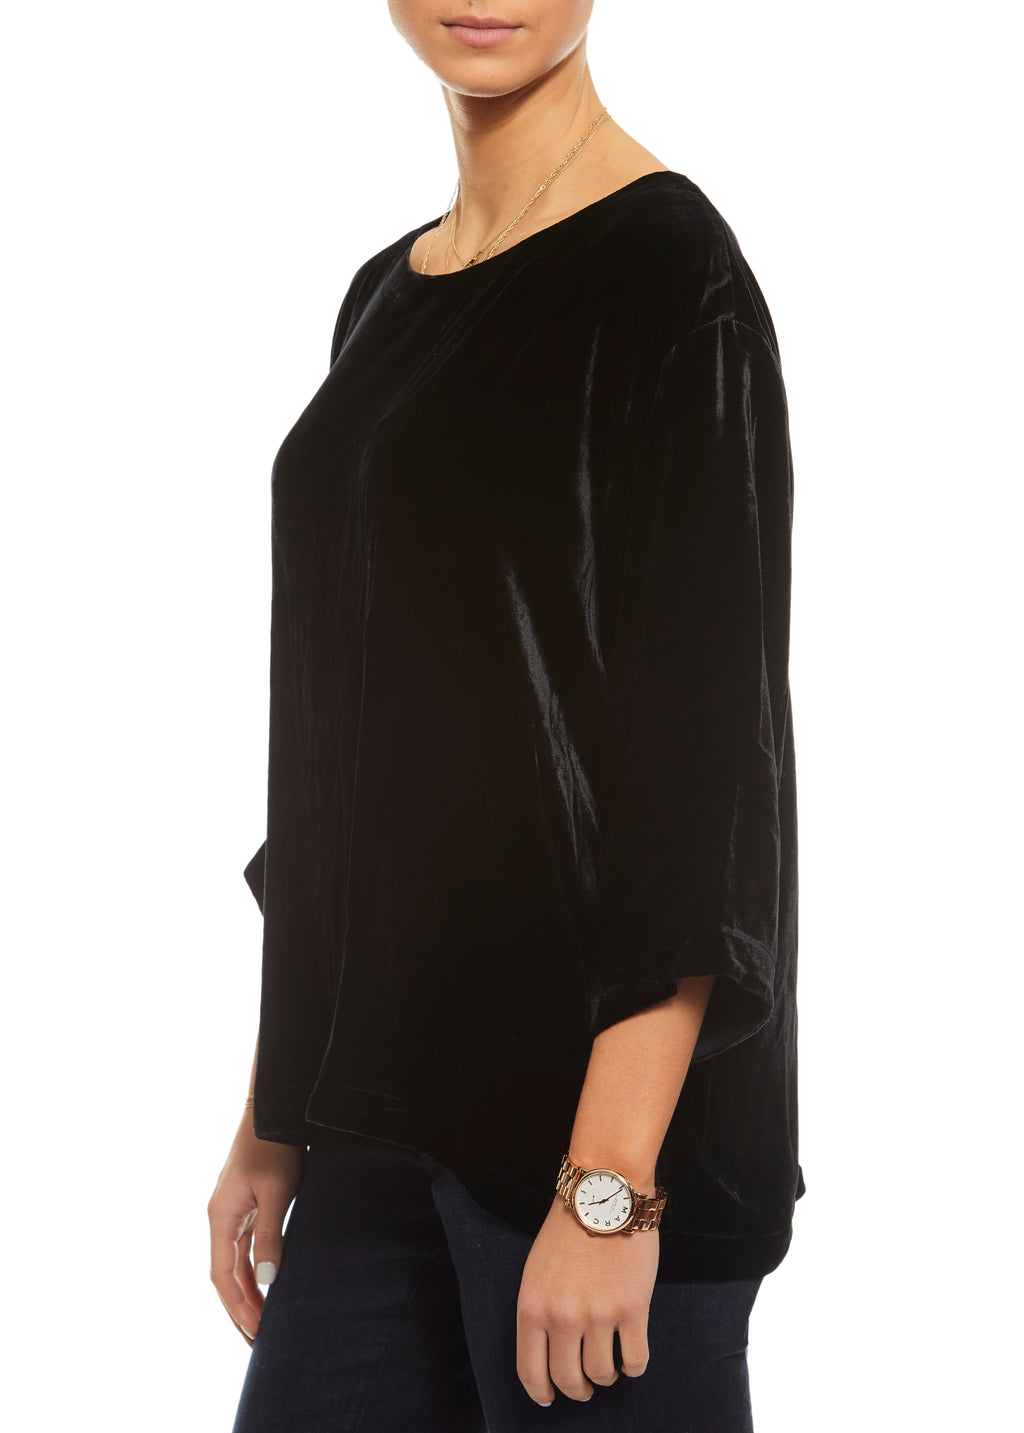 Black Velvet Ballet Box Top Eileen Fisher - Jessimara